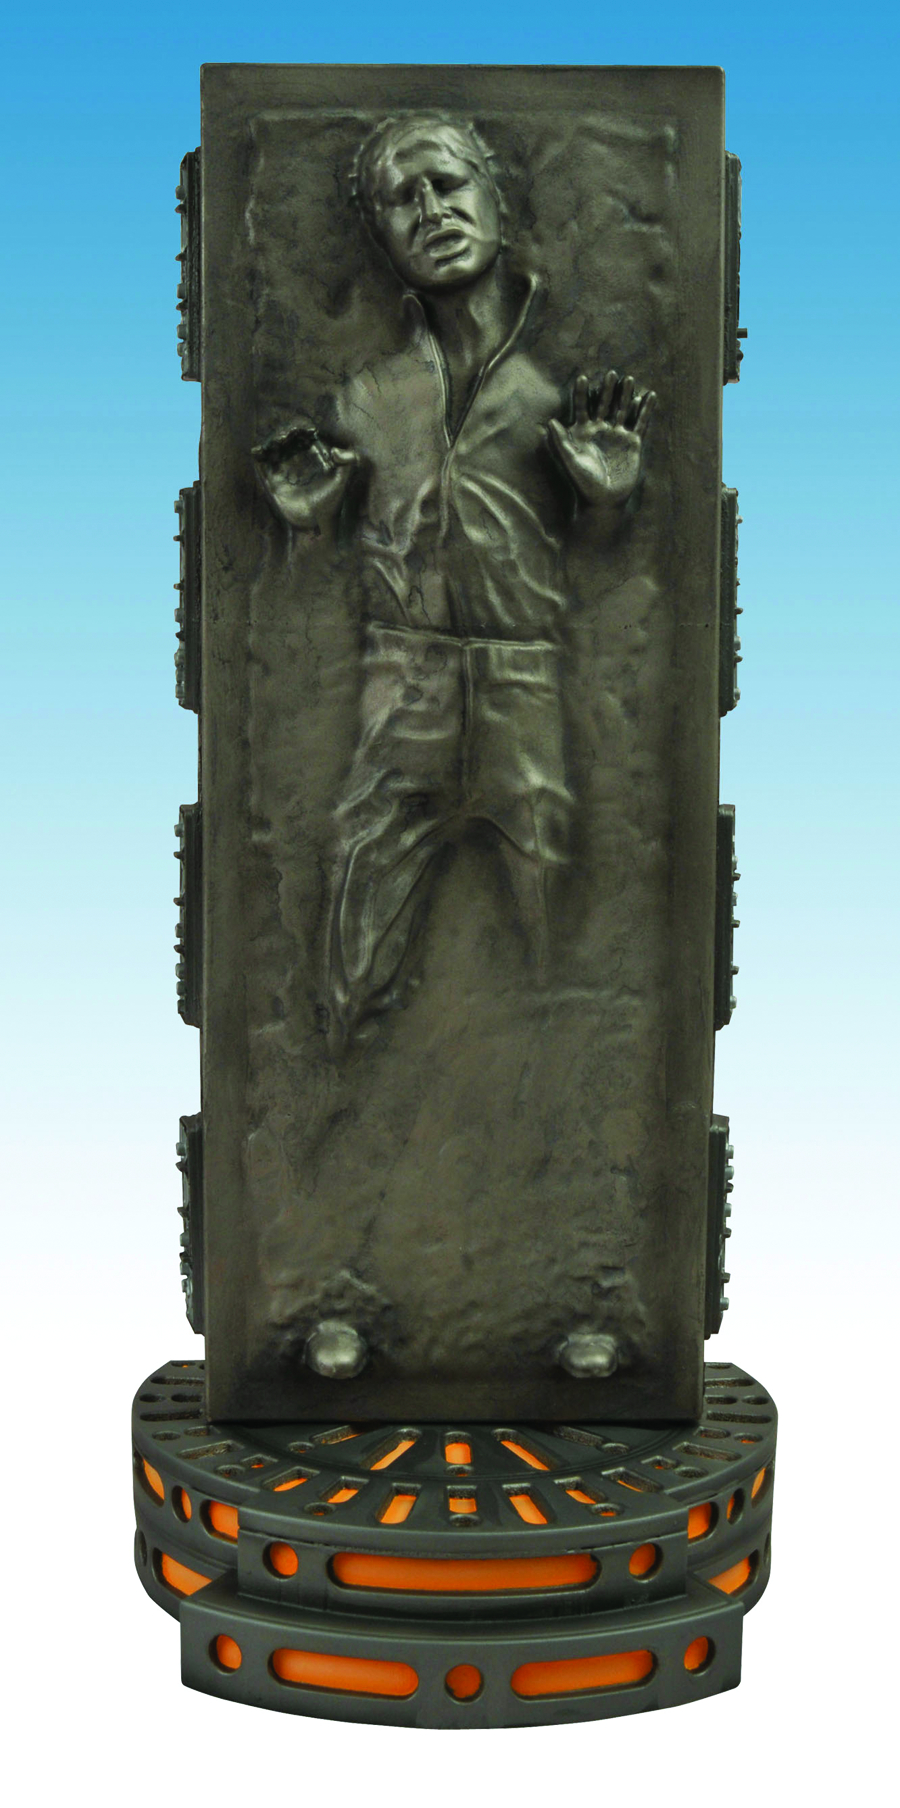 STAR WARS HAN SOLO IN CARBONITE BANK